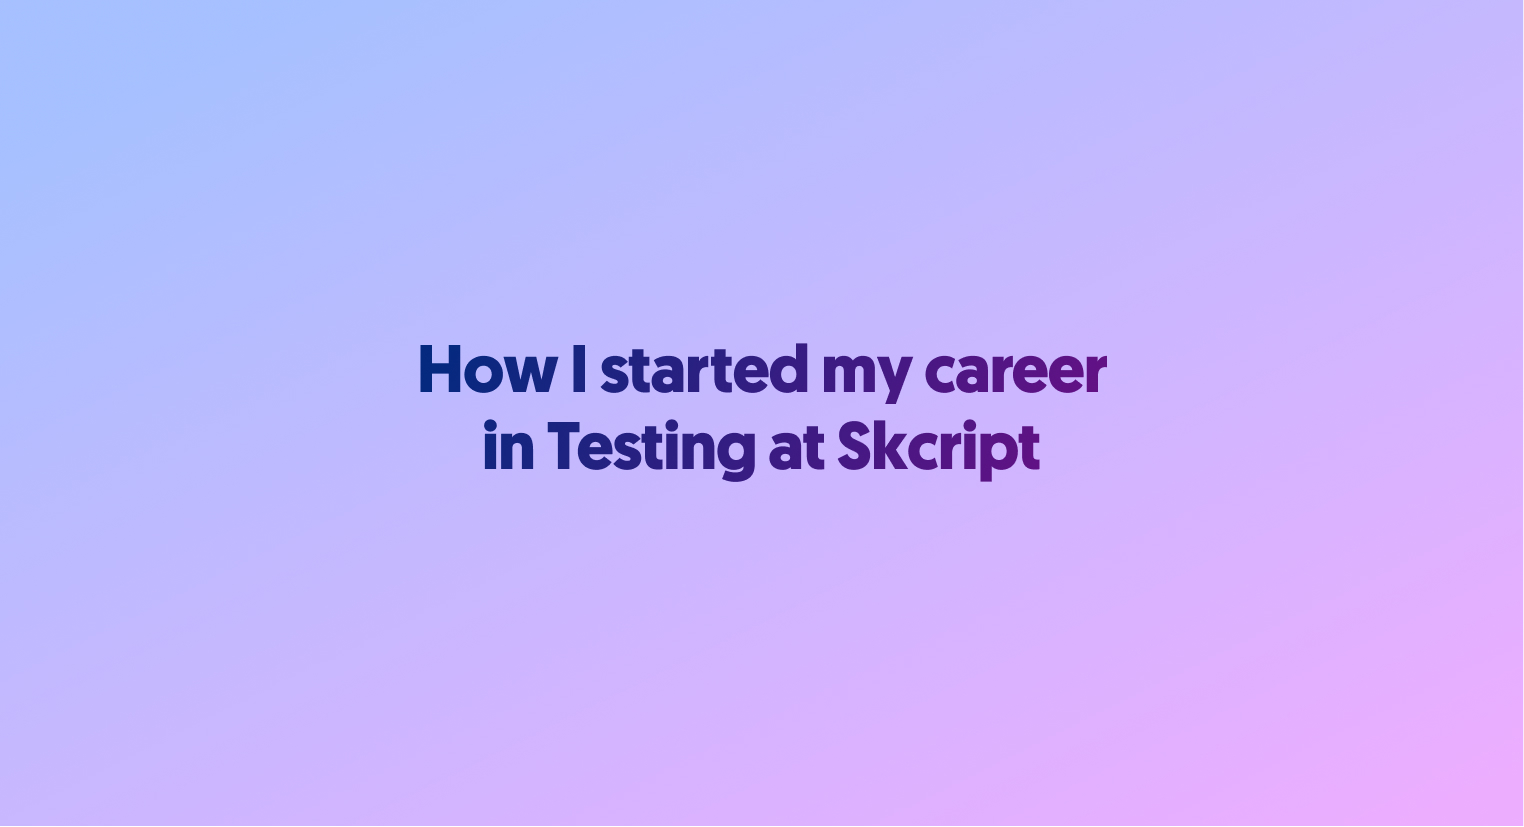 How I started my career in 'Testing' at Skcript